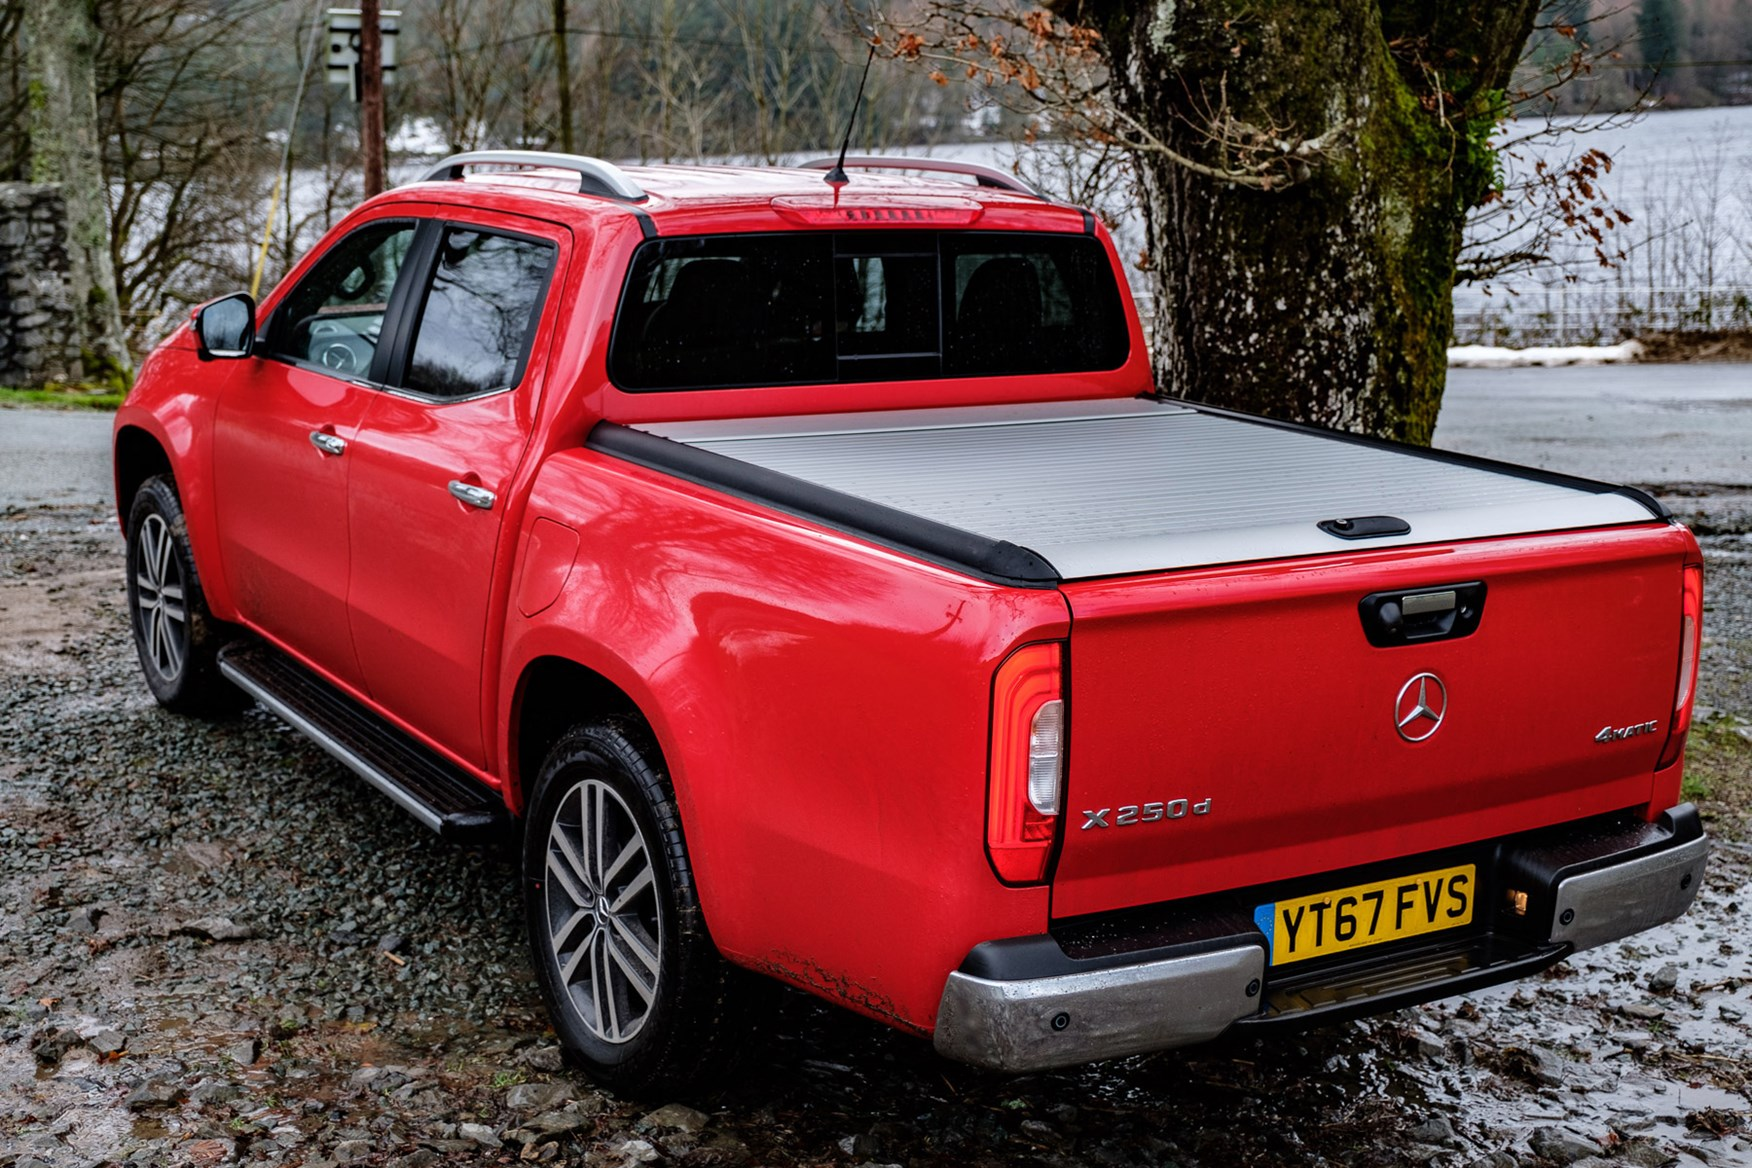 Mercedes-Benz X-Class full review on Parkers Vans - load area cover